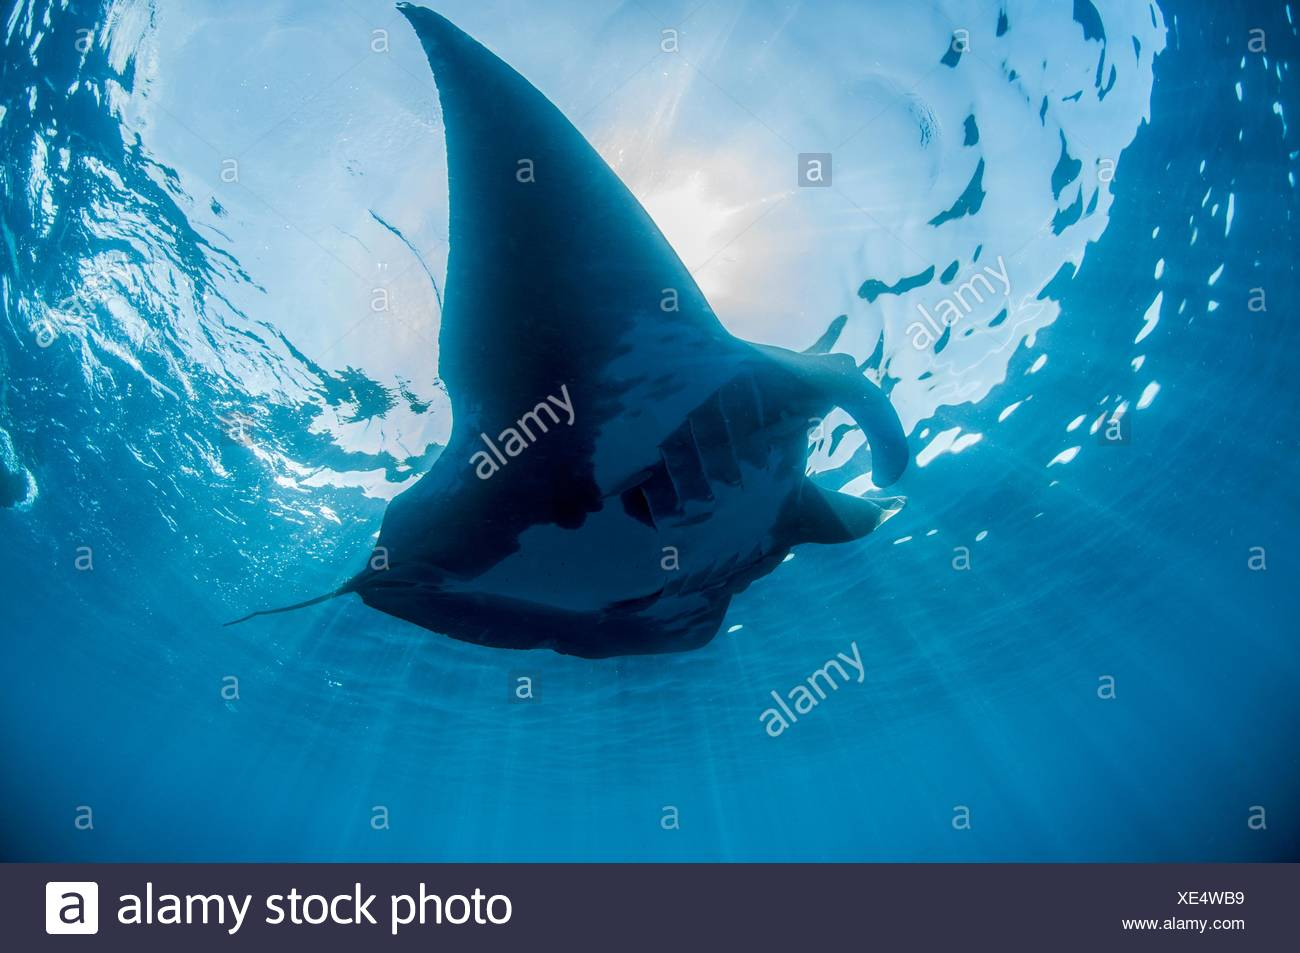 Underwater view of silhouetted giant manta sunbathing, Isla Mujeres, Quintana Roo, Mexico Stock Photo